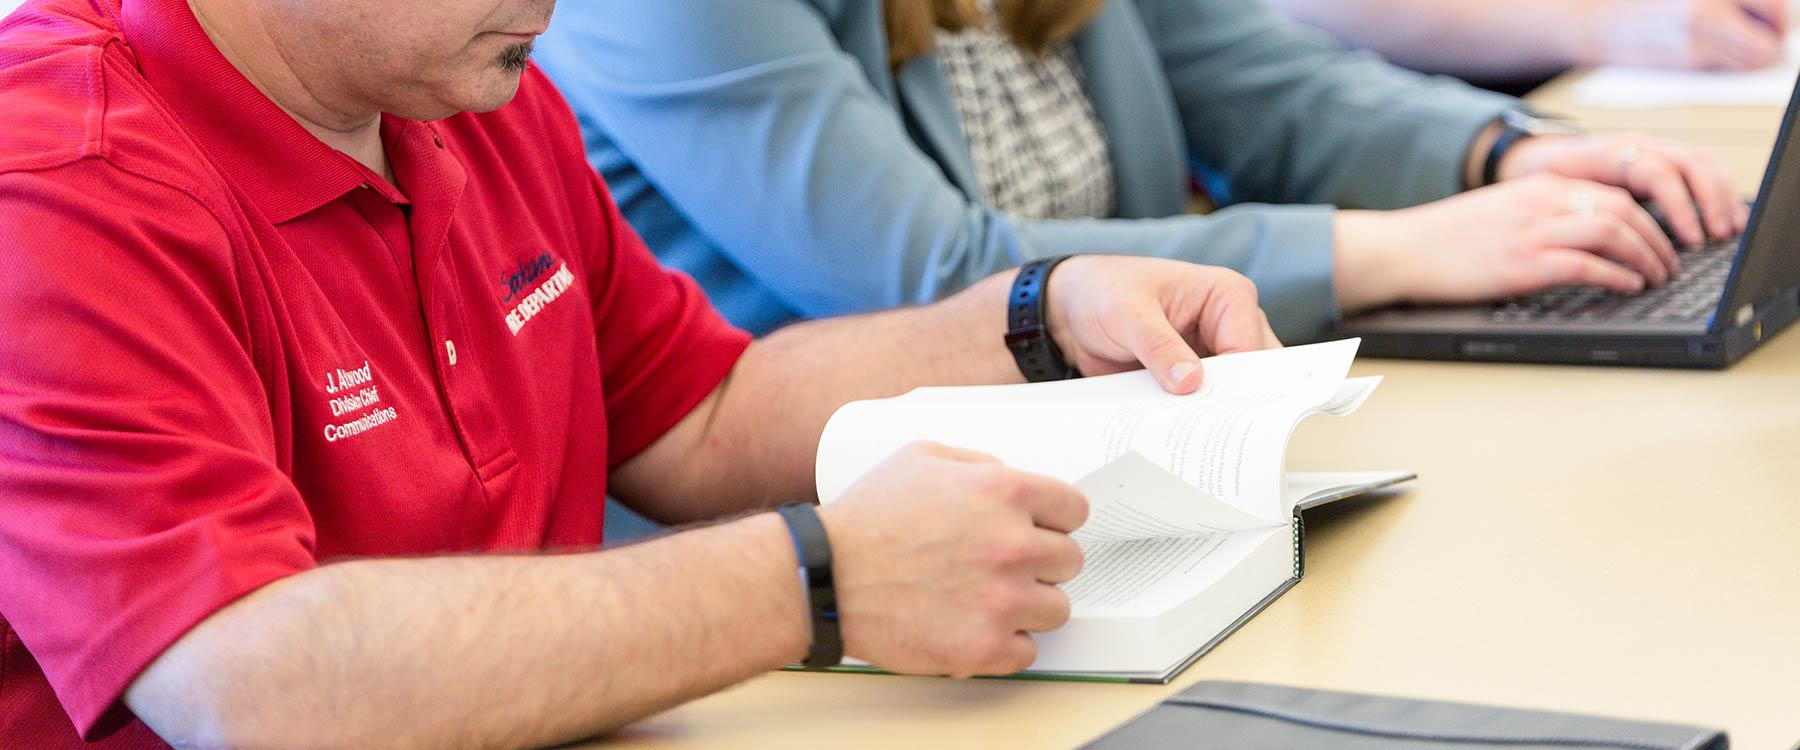 A student looks down at a book and flips through the pages. Next to him, a student types on a laptop.